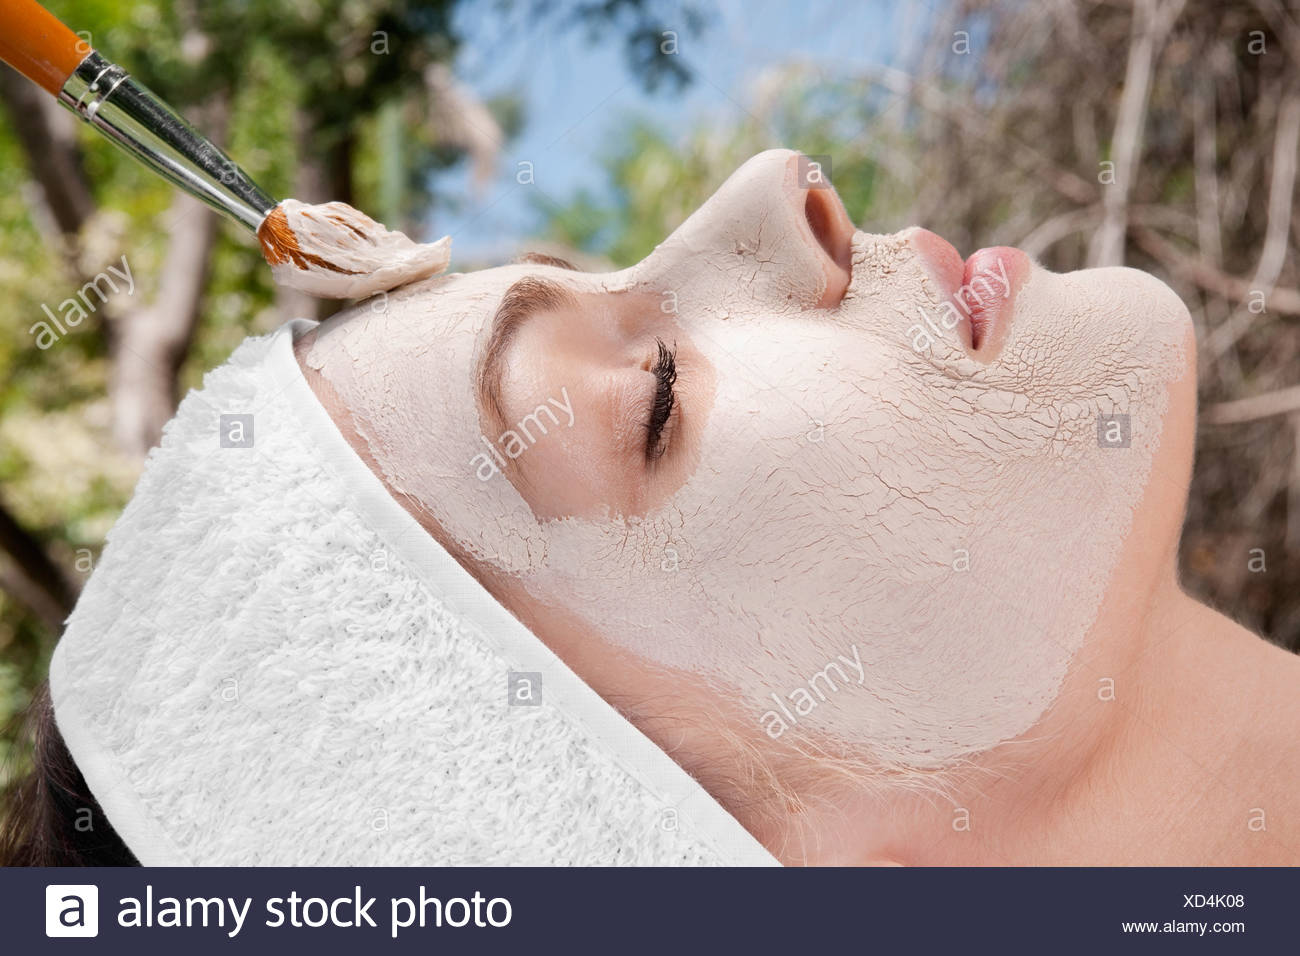 Woman applying face pack - Stock Image